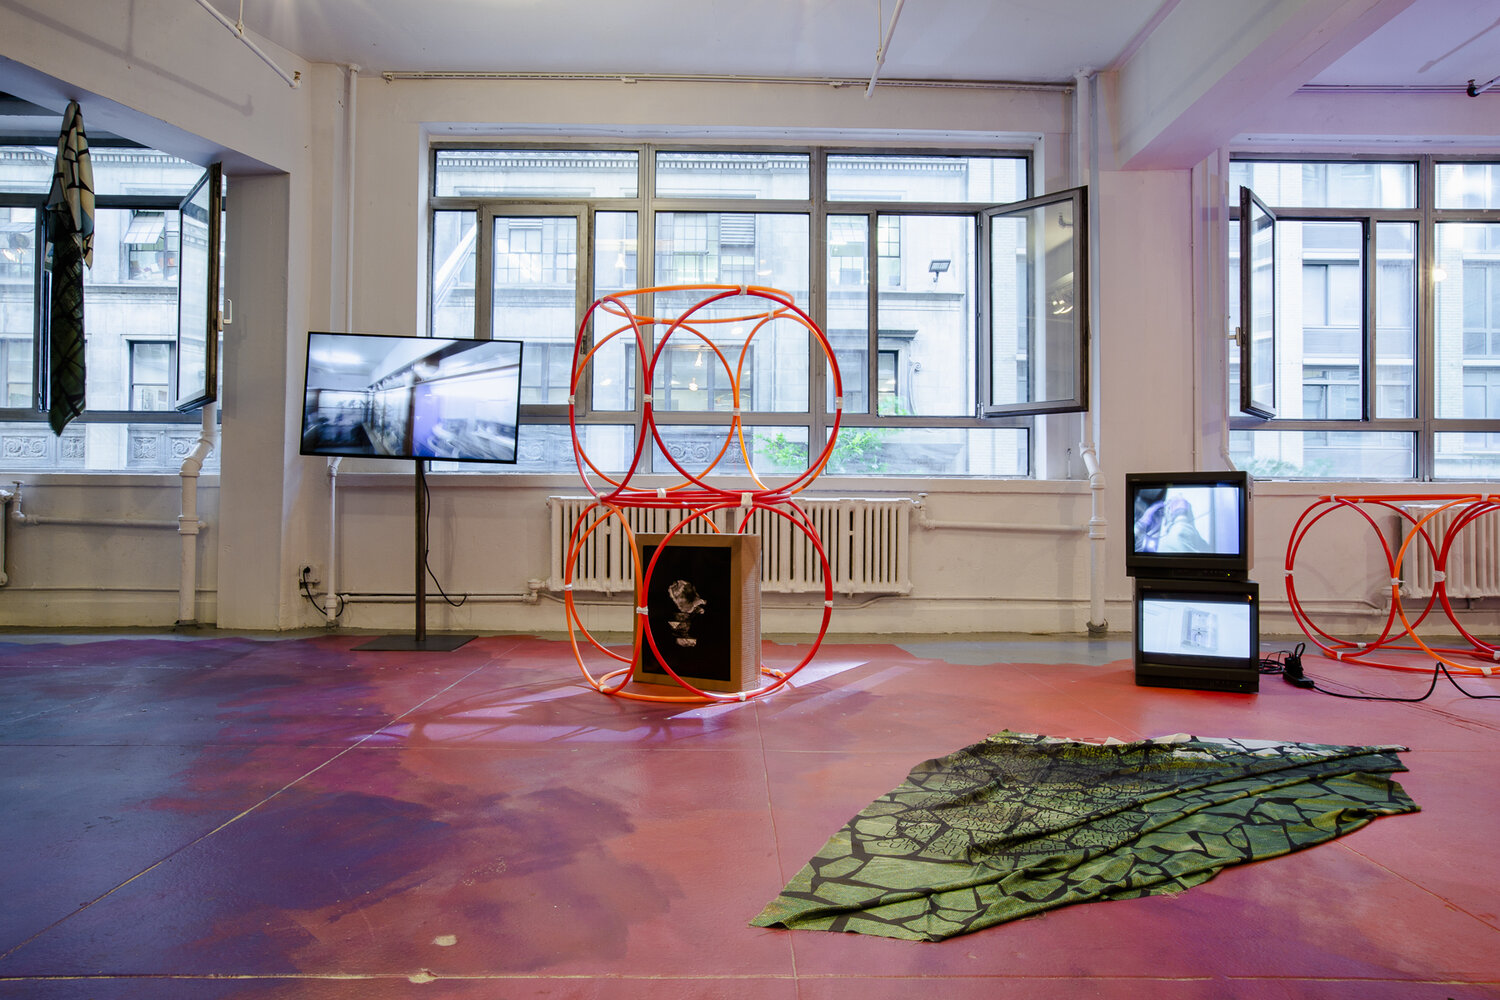 Yona Friedman,  Museum Without Building , Hula hoops and white tape, dimensions vary, 2019.  Nicholas Vargelis,  Prise, Interrupteur, Douille , incandescent bulbs, bent electrical pipe, incandescent colored bulbs, outlet, switches, cable, two video cube monitors, video loops, dimensions vary, 2019.  Dana Levy,  Silent Among Us , video, 5 min. run time each, looped, 2008.  Pradeep Dalal,  Samagri (1-4) , digital chromatic prints on cardboard box supports, 24 x 20 x 6in. each, 2015-2019.  Laetitia Badaut Haussman,  The Silk Prints , 4 Posters, Inkjet on Silk, 55 x 67 in. each, 2019.  Flora Moscovici,  Hula hoop Chack Chack , latex paint on floor, approx. 25 x 40 ft., 2019.